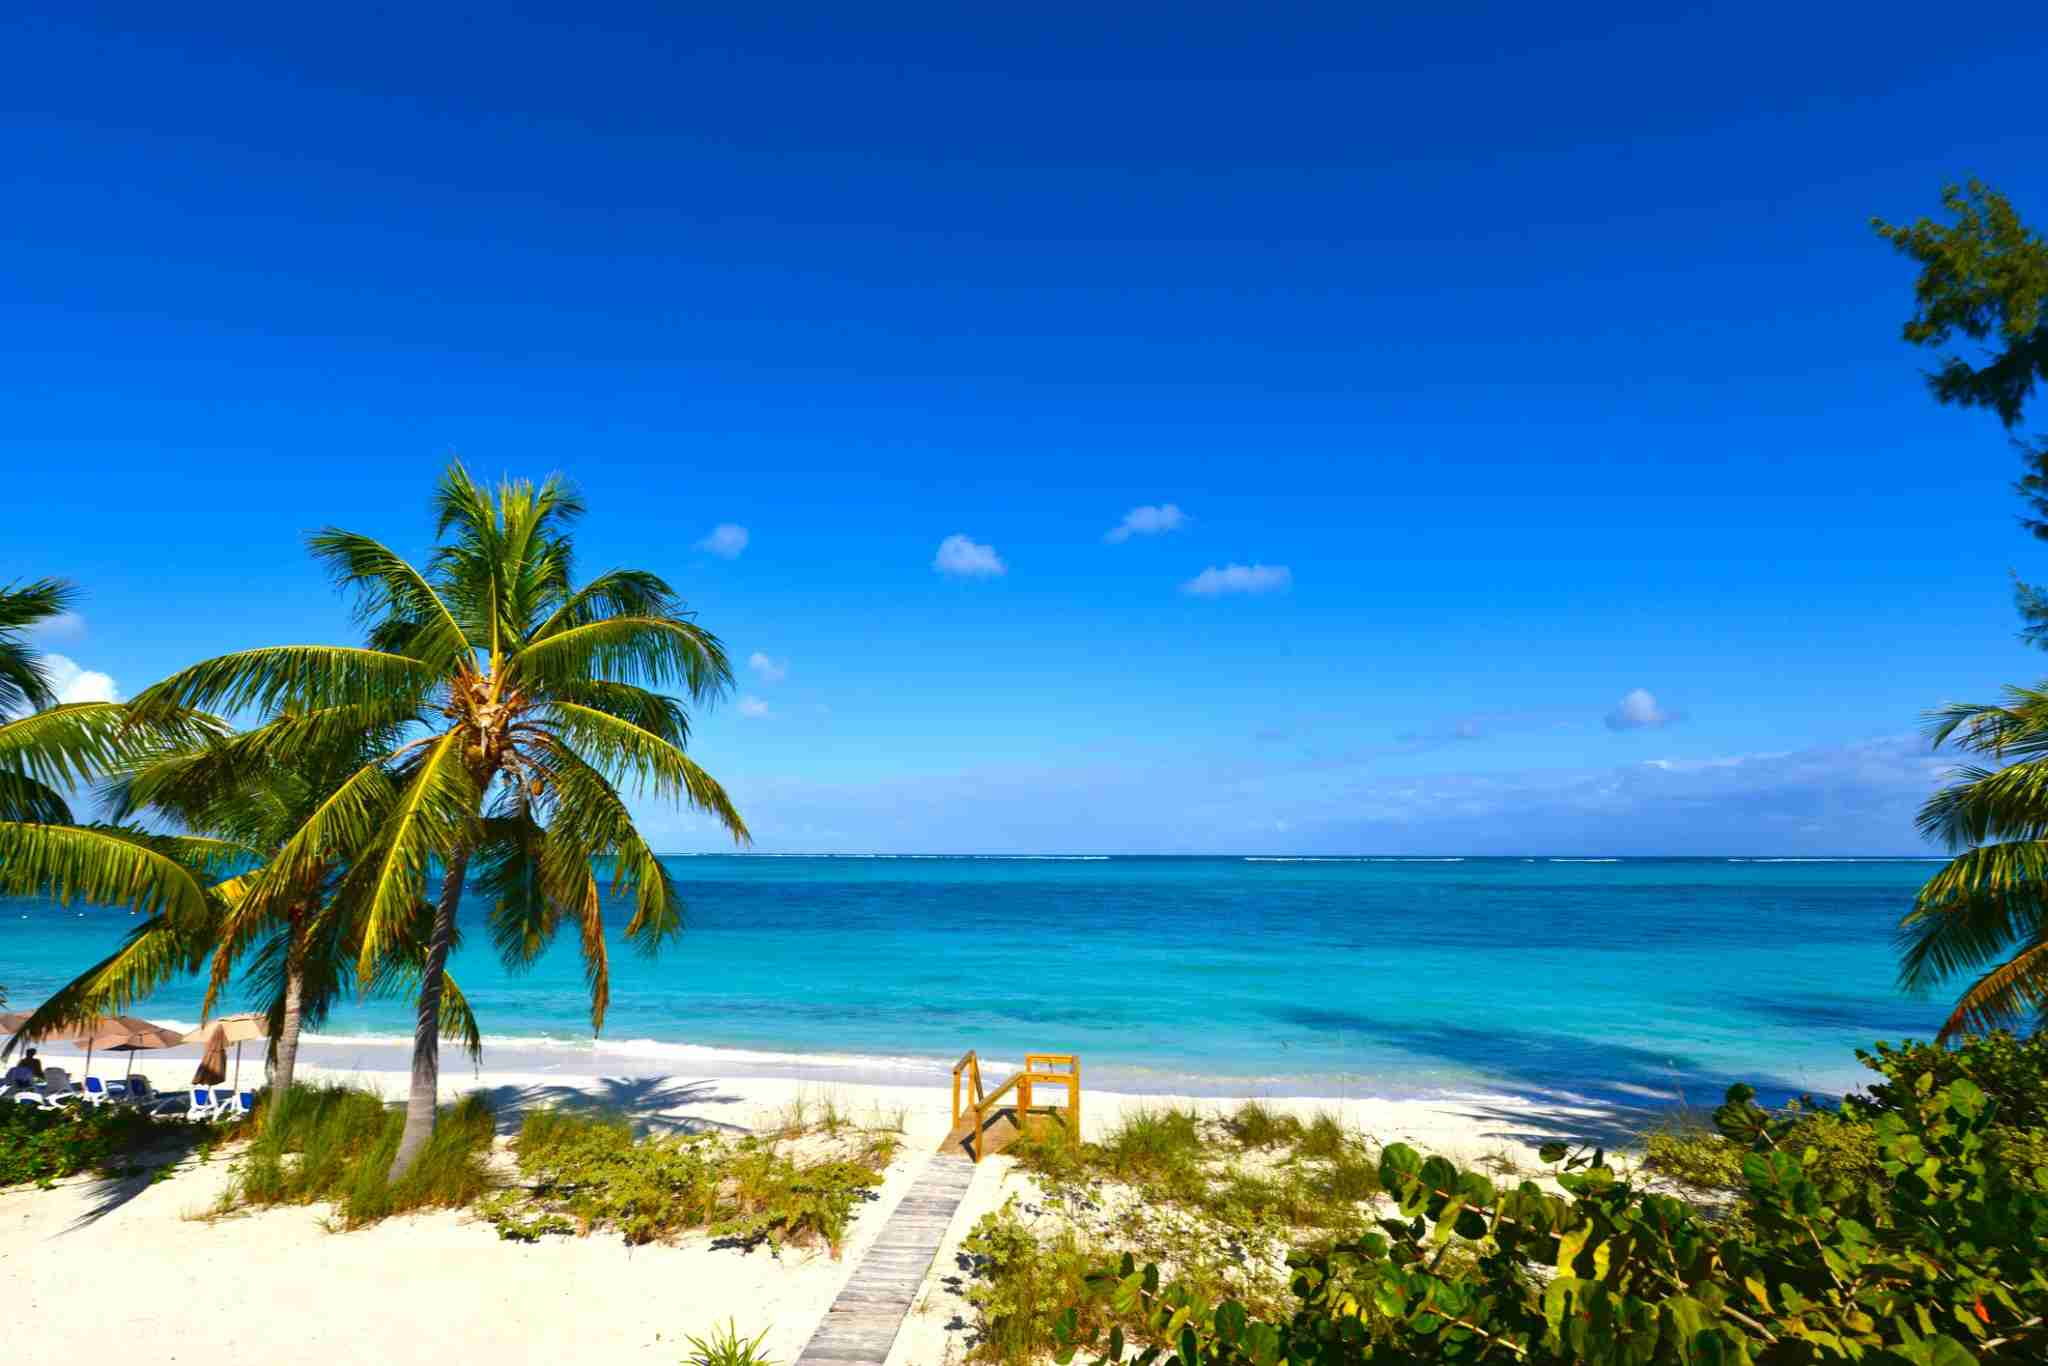 A sunny day at Grace Bay Beach in Providenciales, Turks and Cacos. A walkway on a white sandy is bordered by palm trees and plants. The calm ocean stretches out towards the horizon under a deep blue sky.